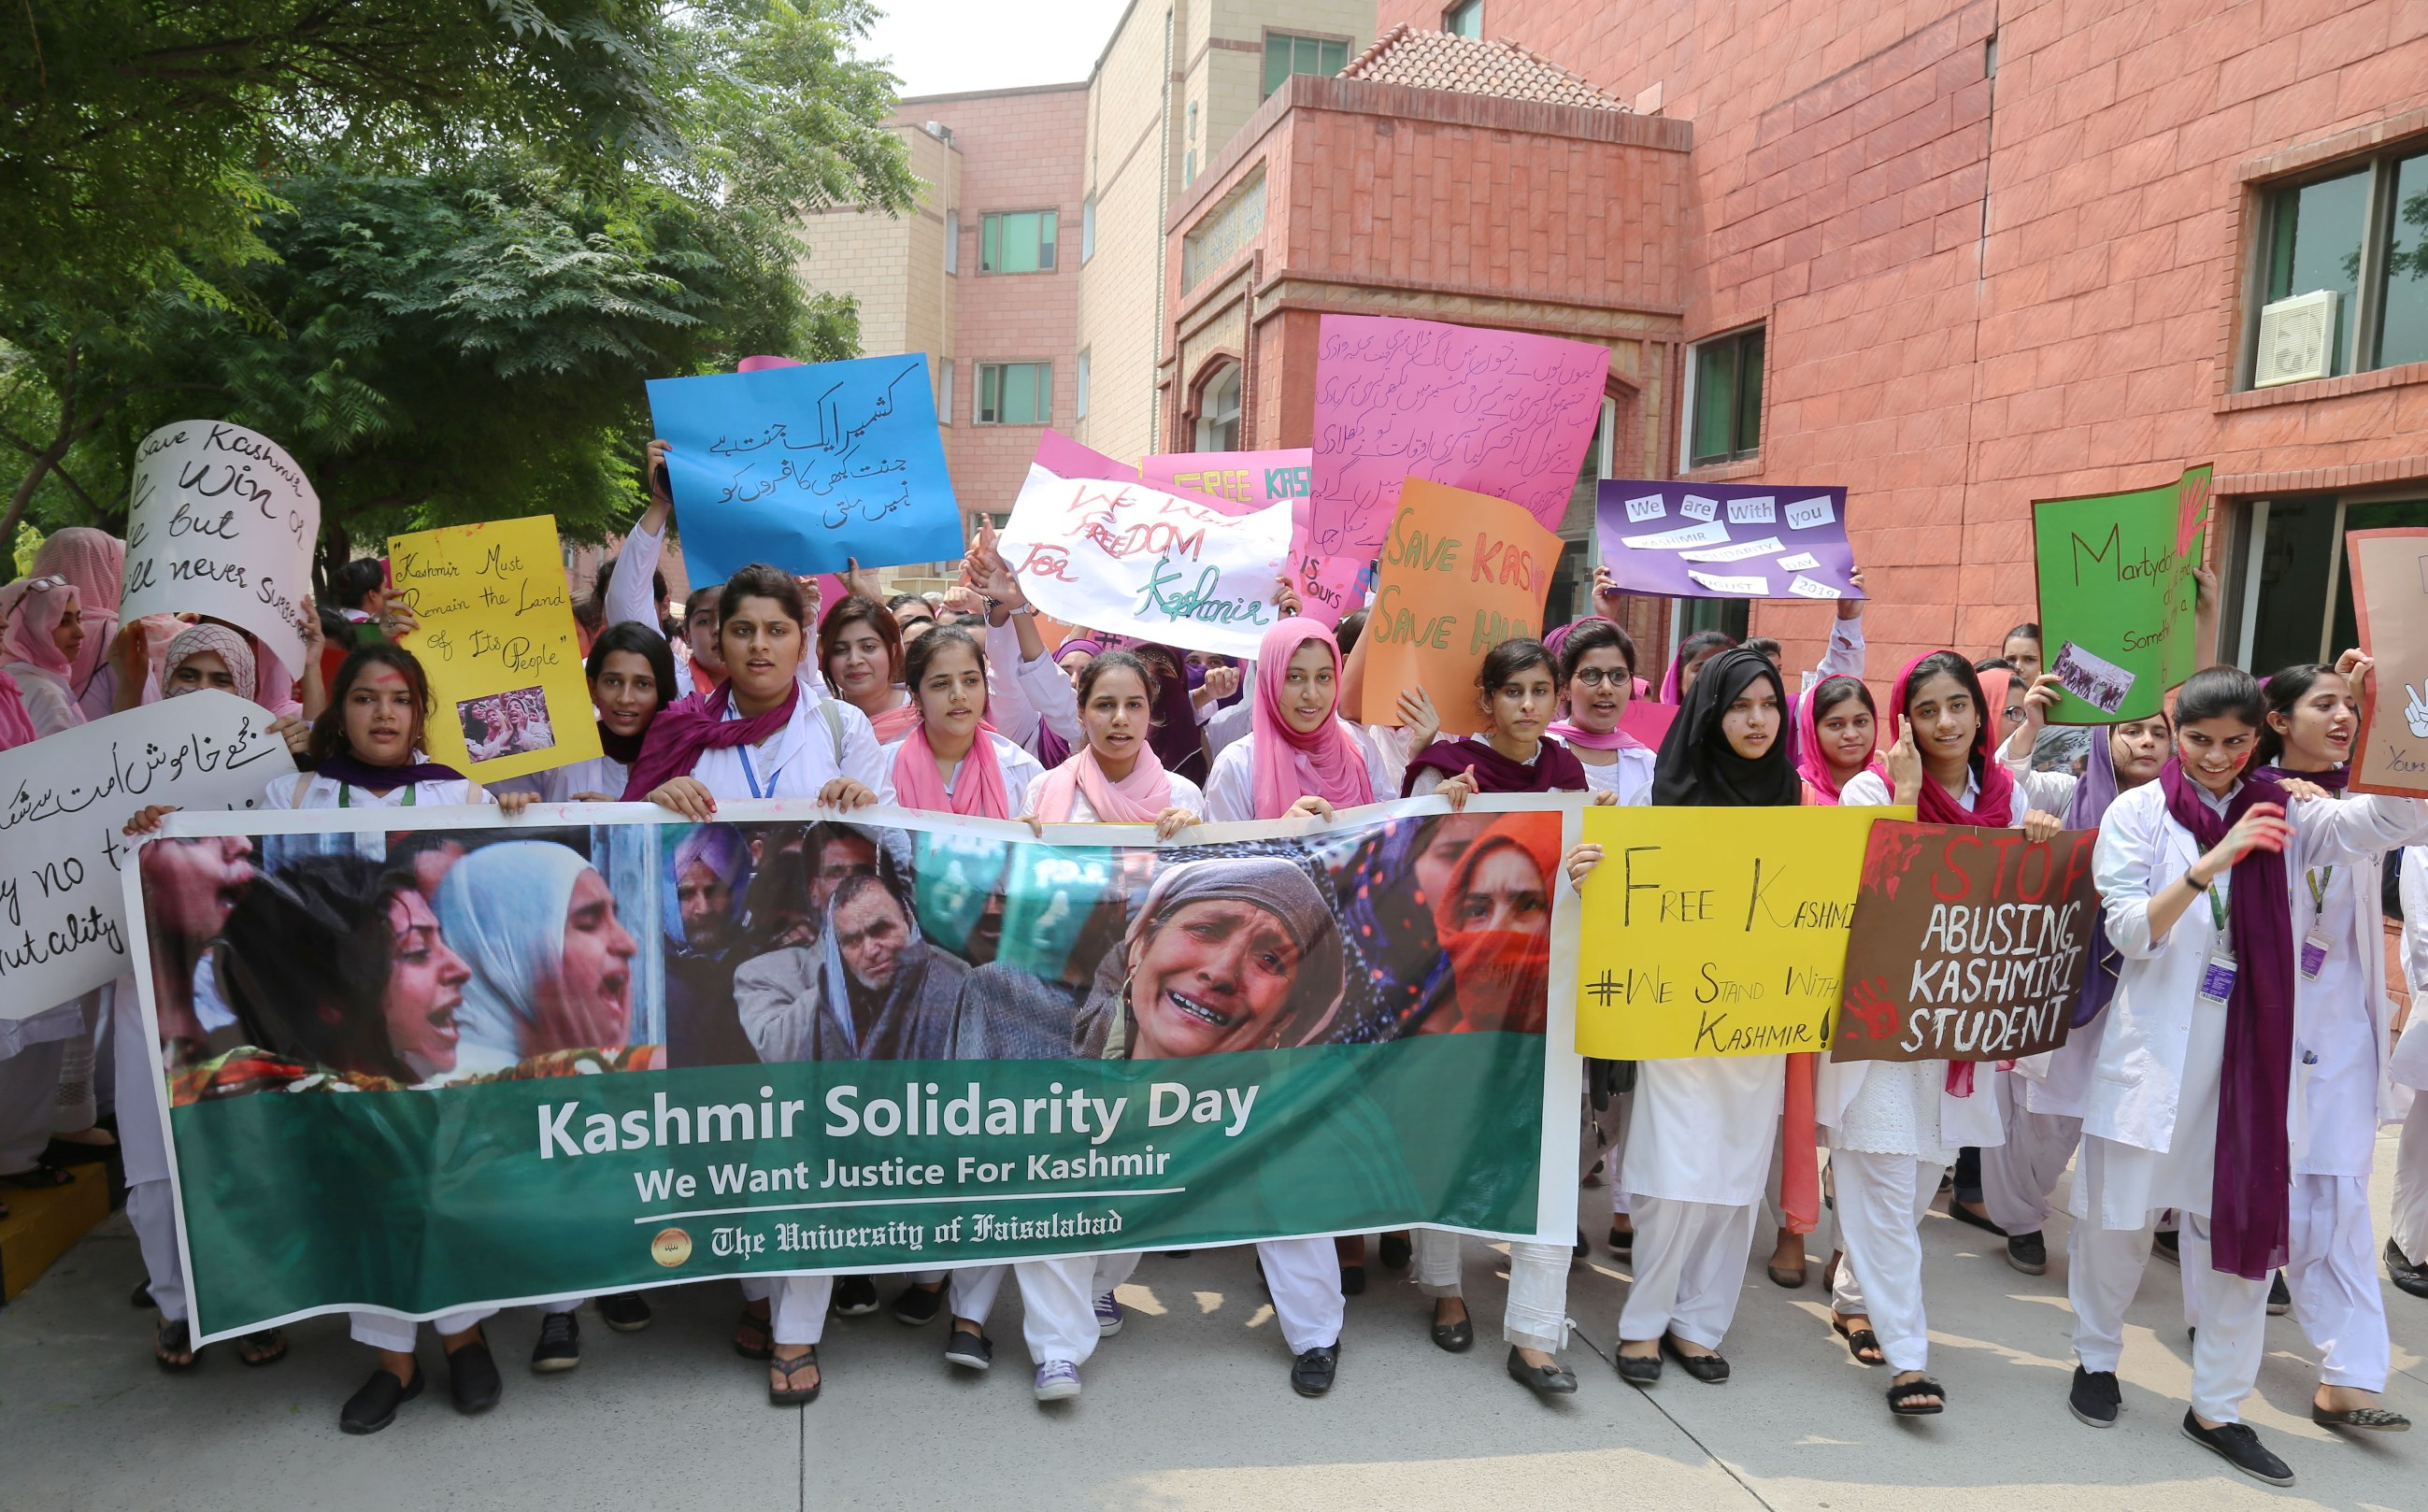 tufians-vow-to-stand-by-oppressed-kashmiris